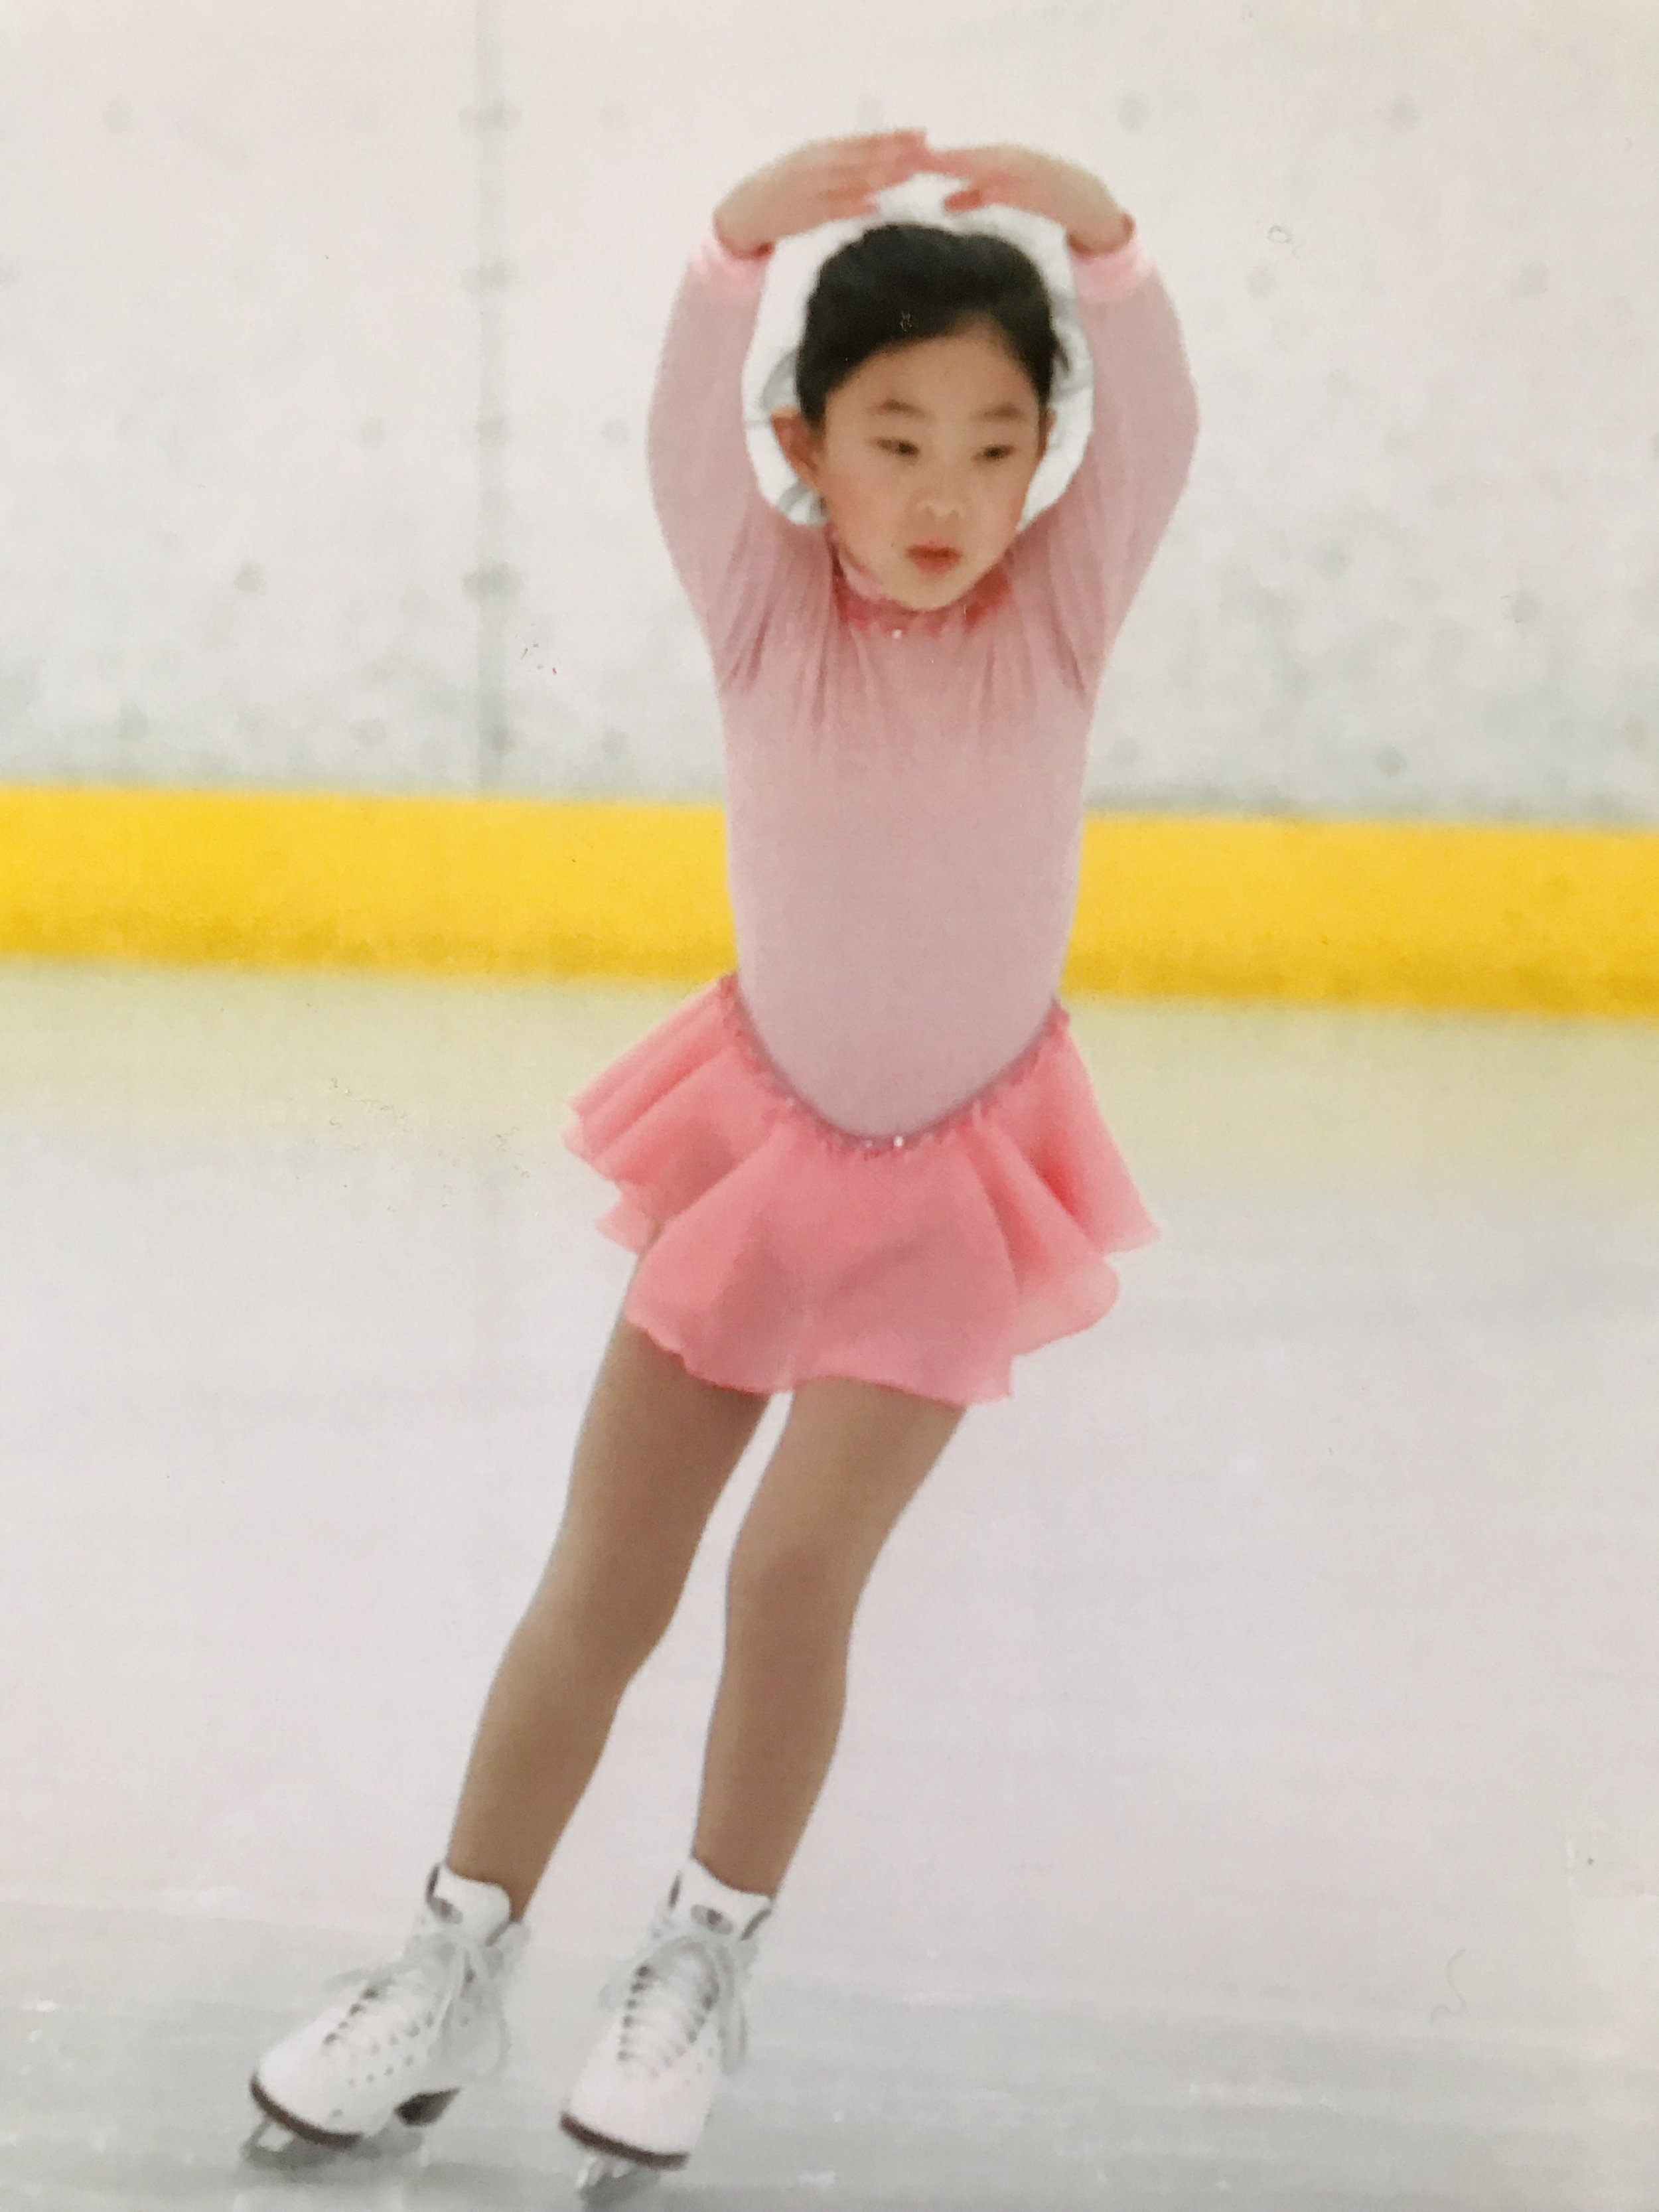 My first skating competition at 7 yrs old  (The Syncopated Clock by Leroy Anderson)